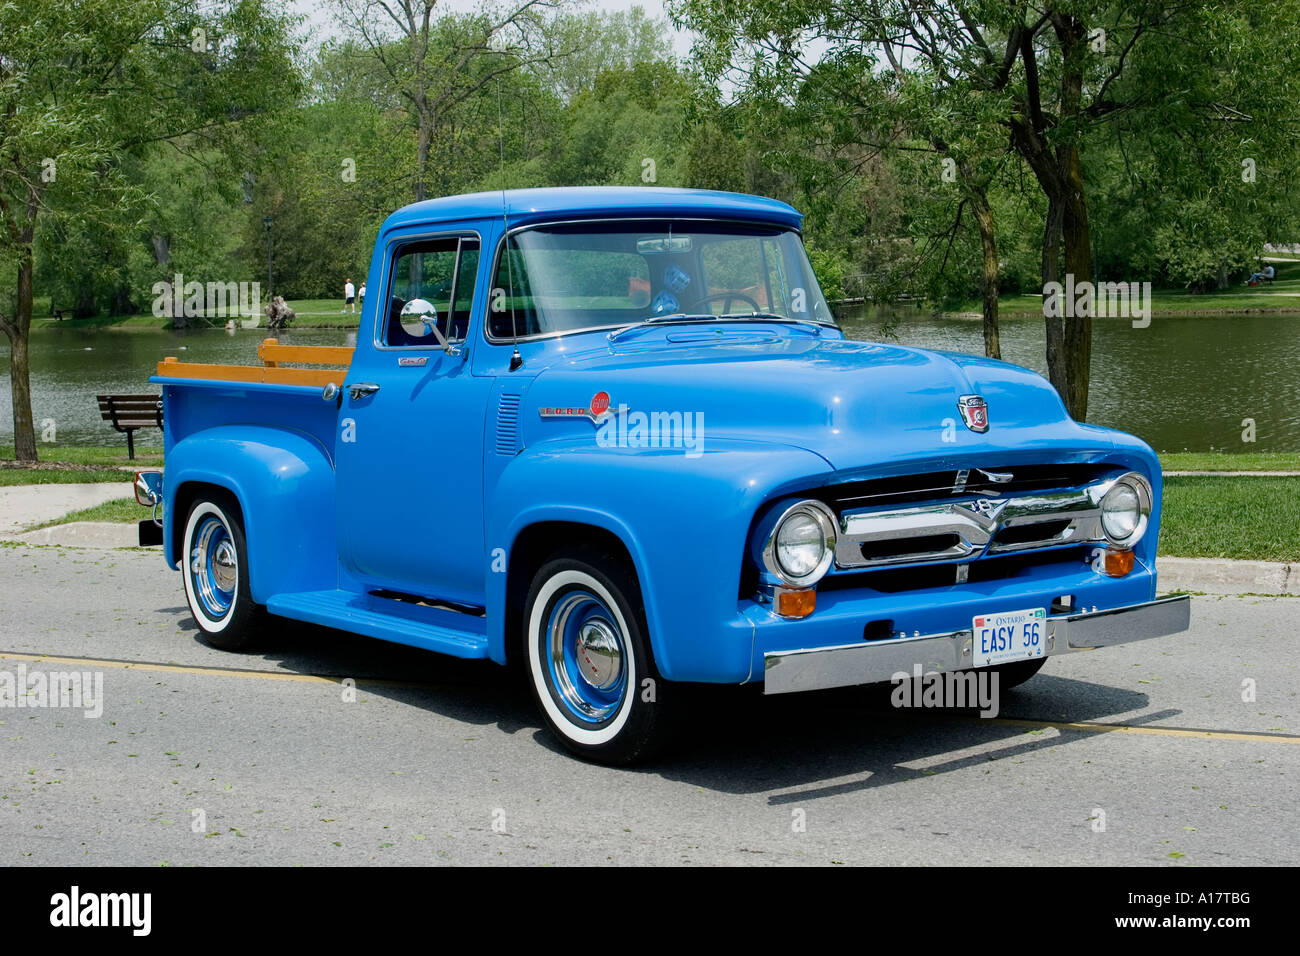 1956 ford f100 custom cab pickup truck on pavement